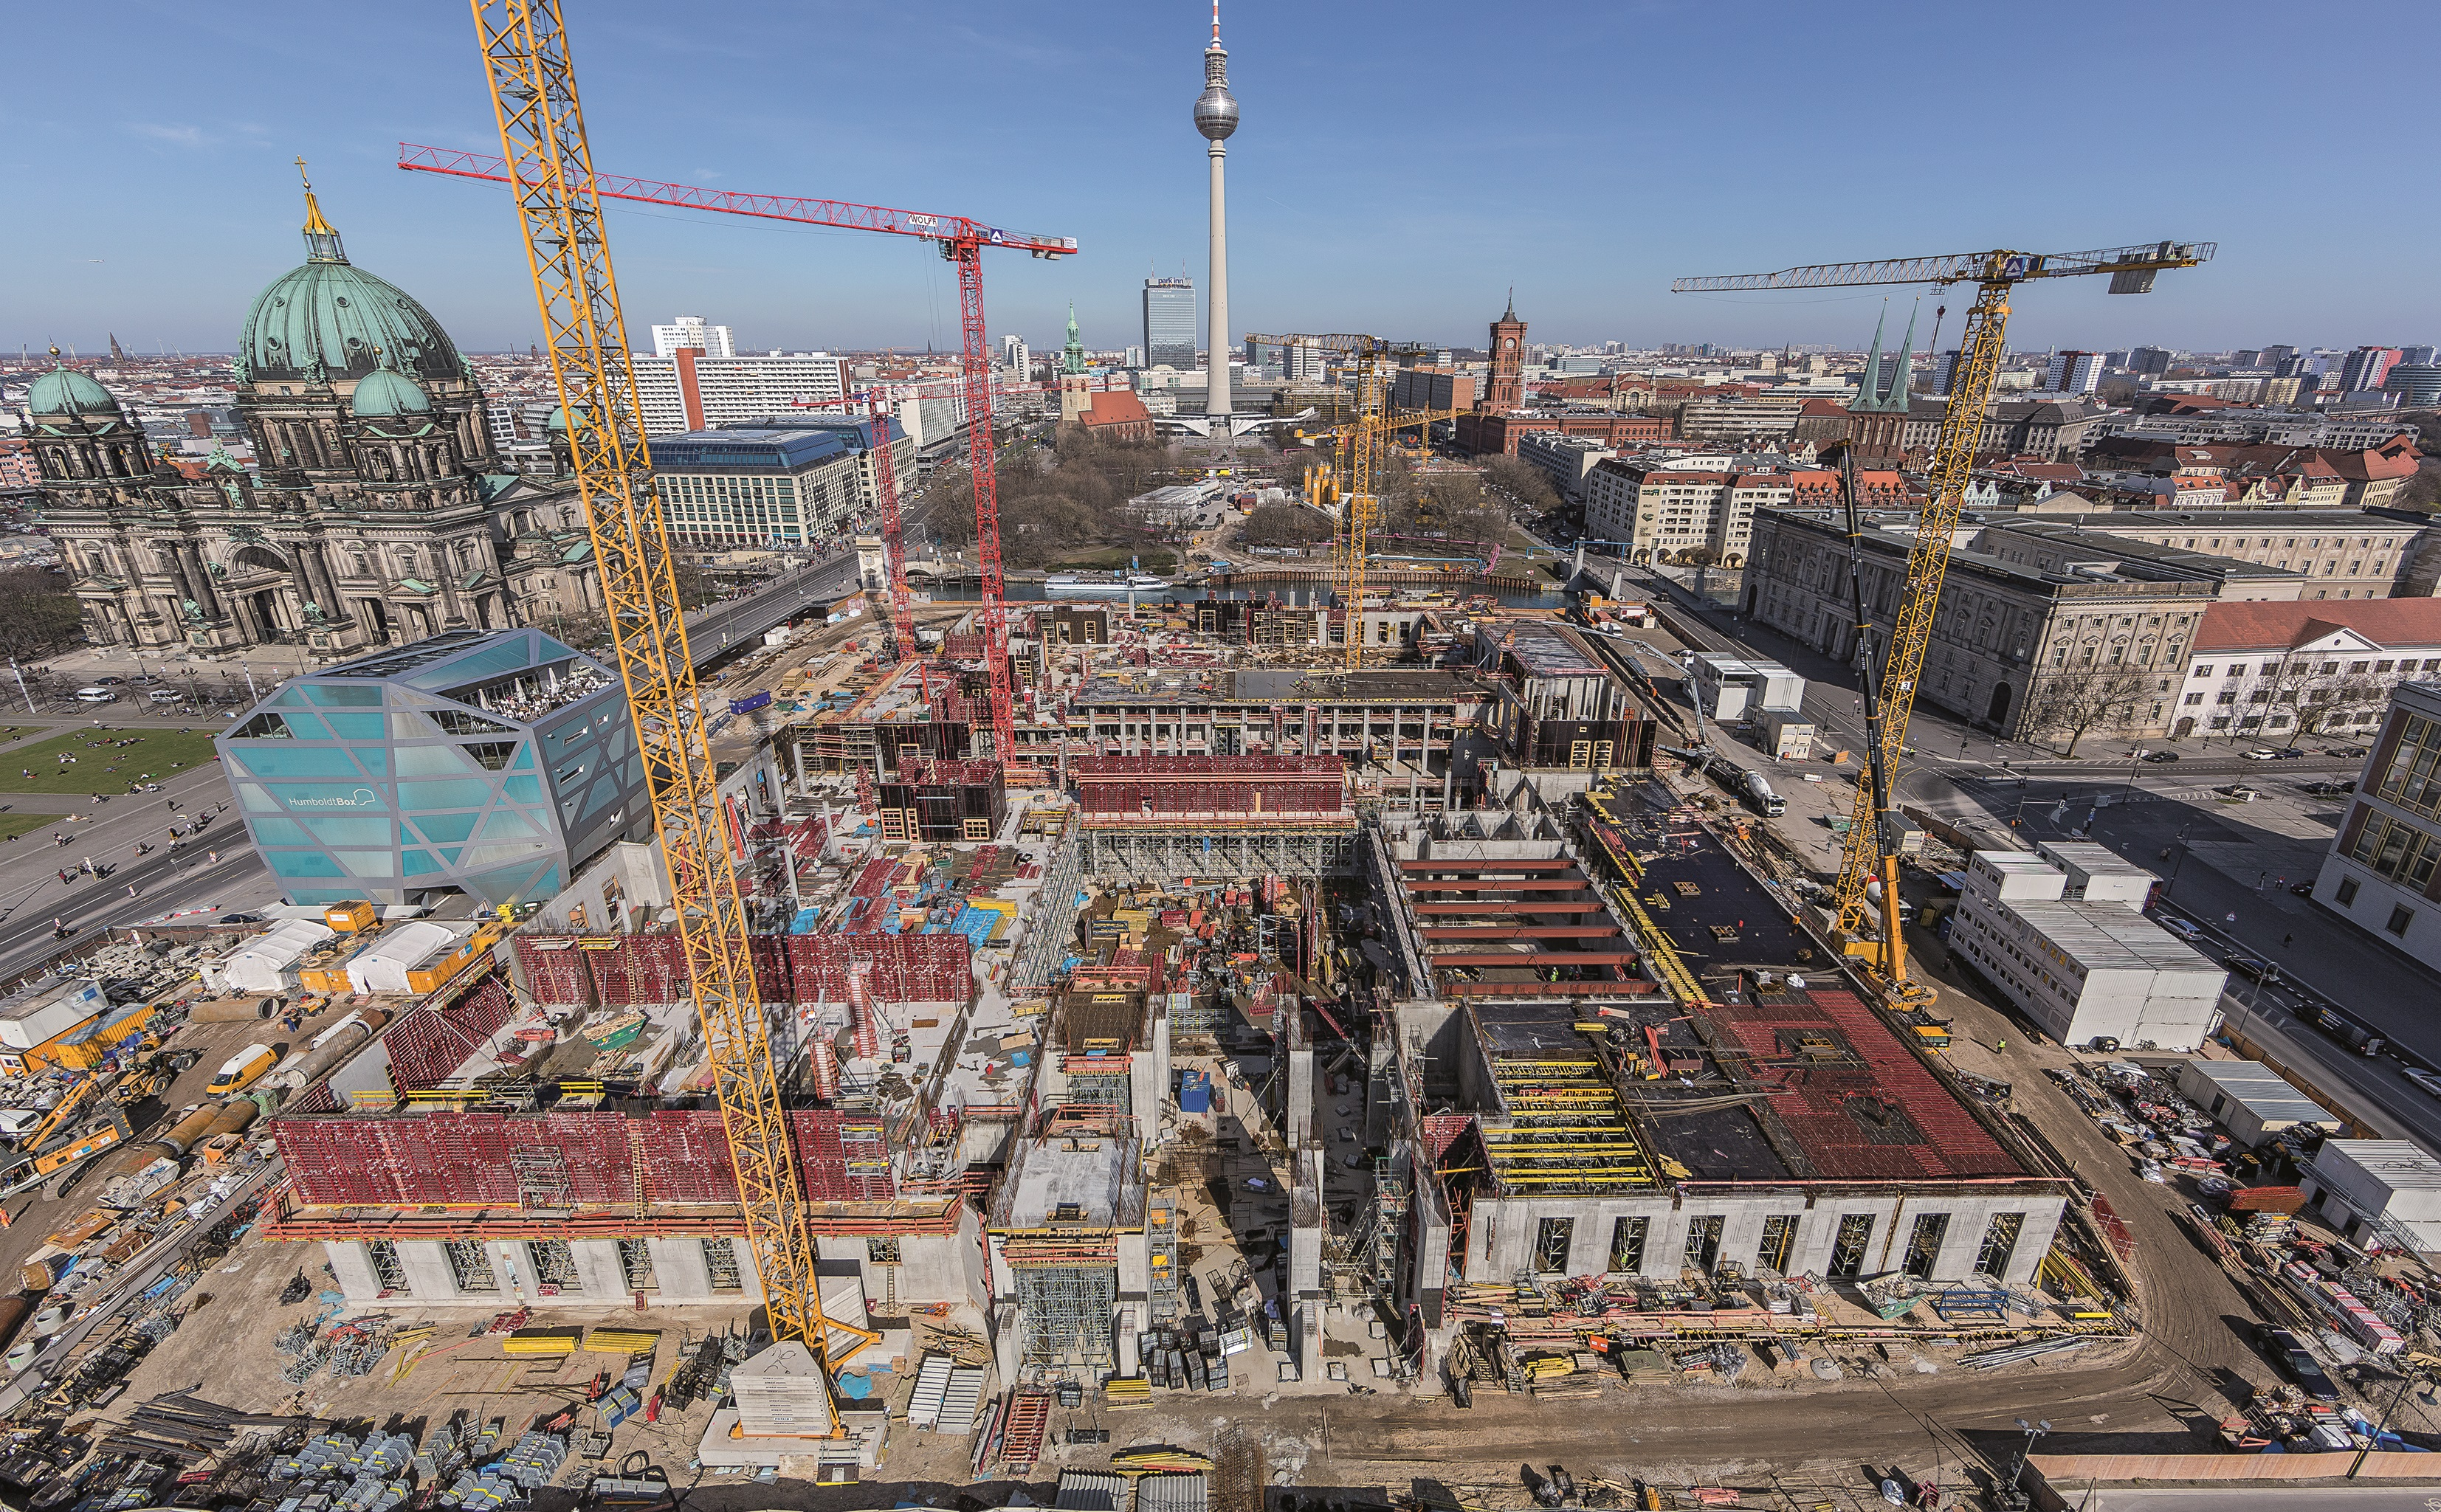 PERI supplied economical formwork and scaffolding solutions from a single source for the reconstruction of the Berlin City Palace. In addition to fast shuttering and repositioning times, the on-site project support provided by the PERI engineers ensured that the very tight construction schedule could be adhered to. (Photo: PERI GmbH)